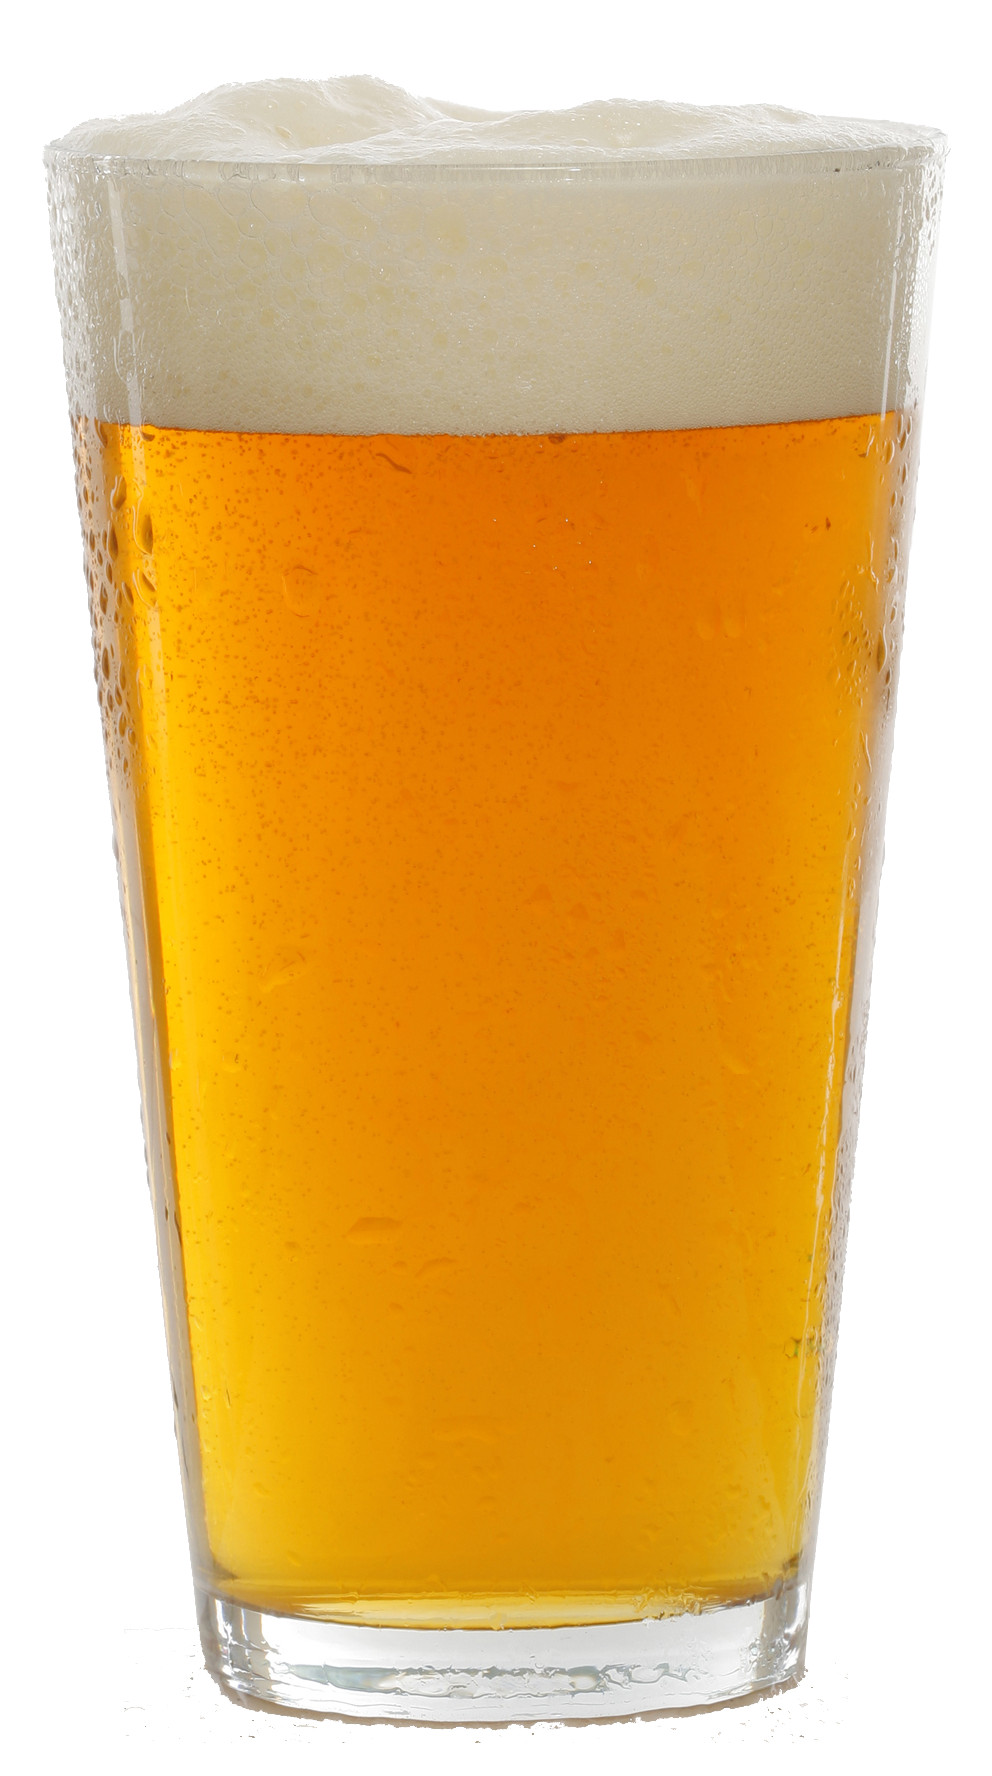 Png backgrounds images etc. Clipart beer alcahol